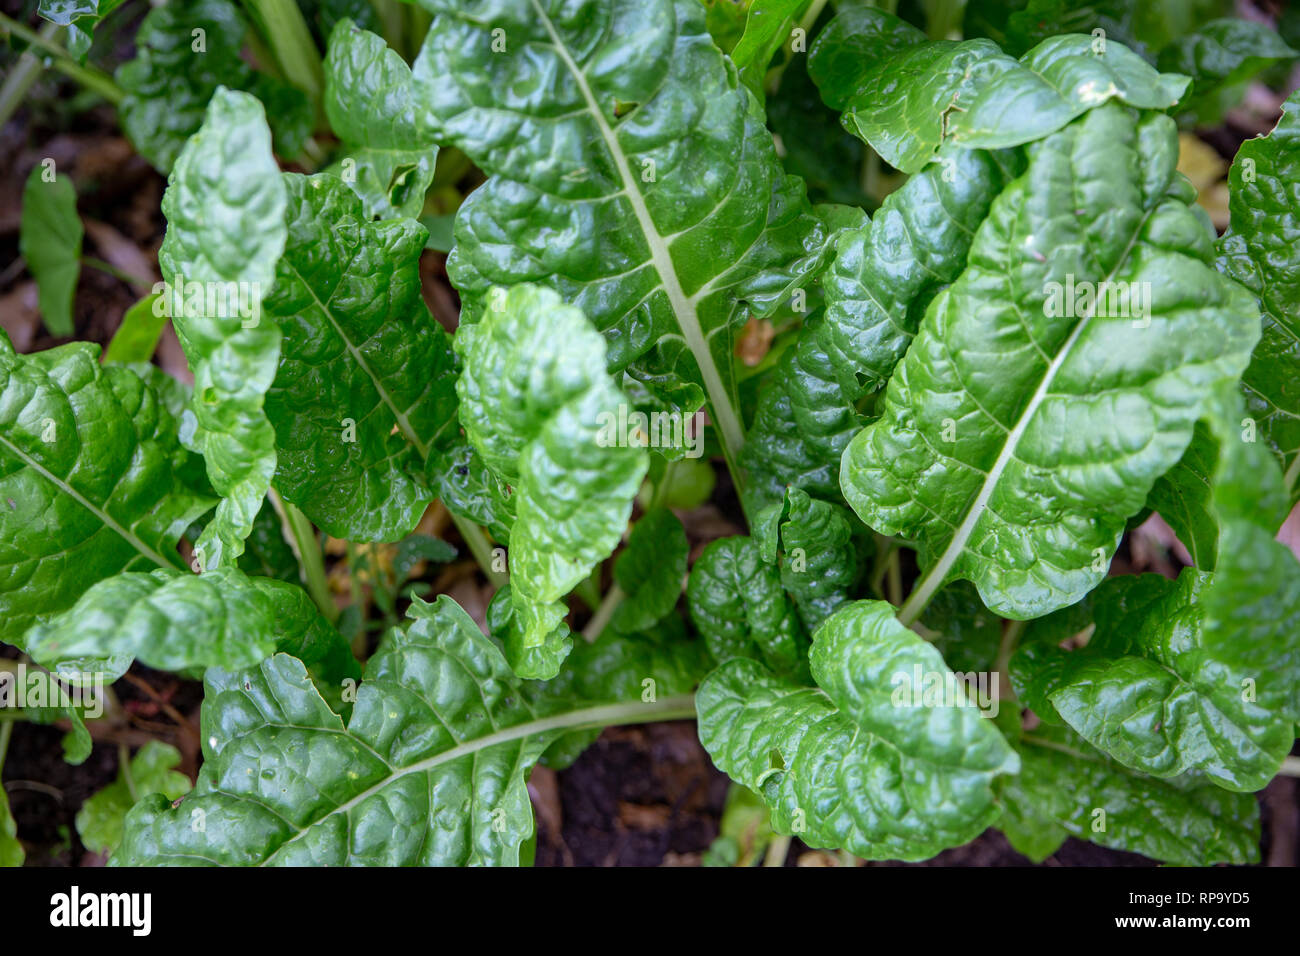 Healthy organic silverbeet growing in a garden in Canterbury, New Zealand - Stock Image